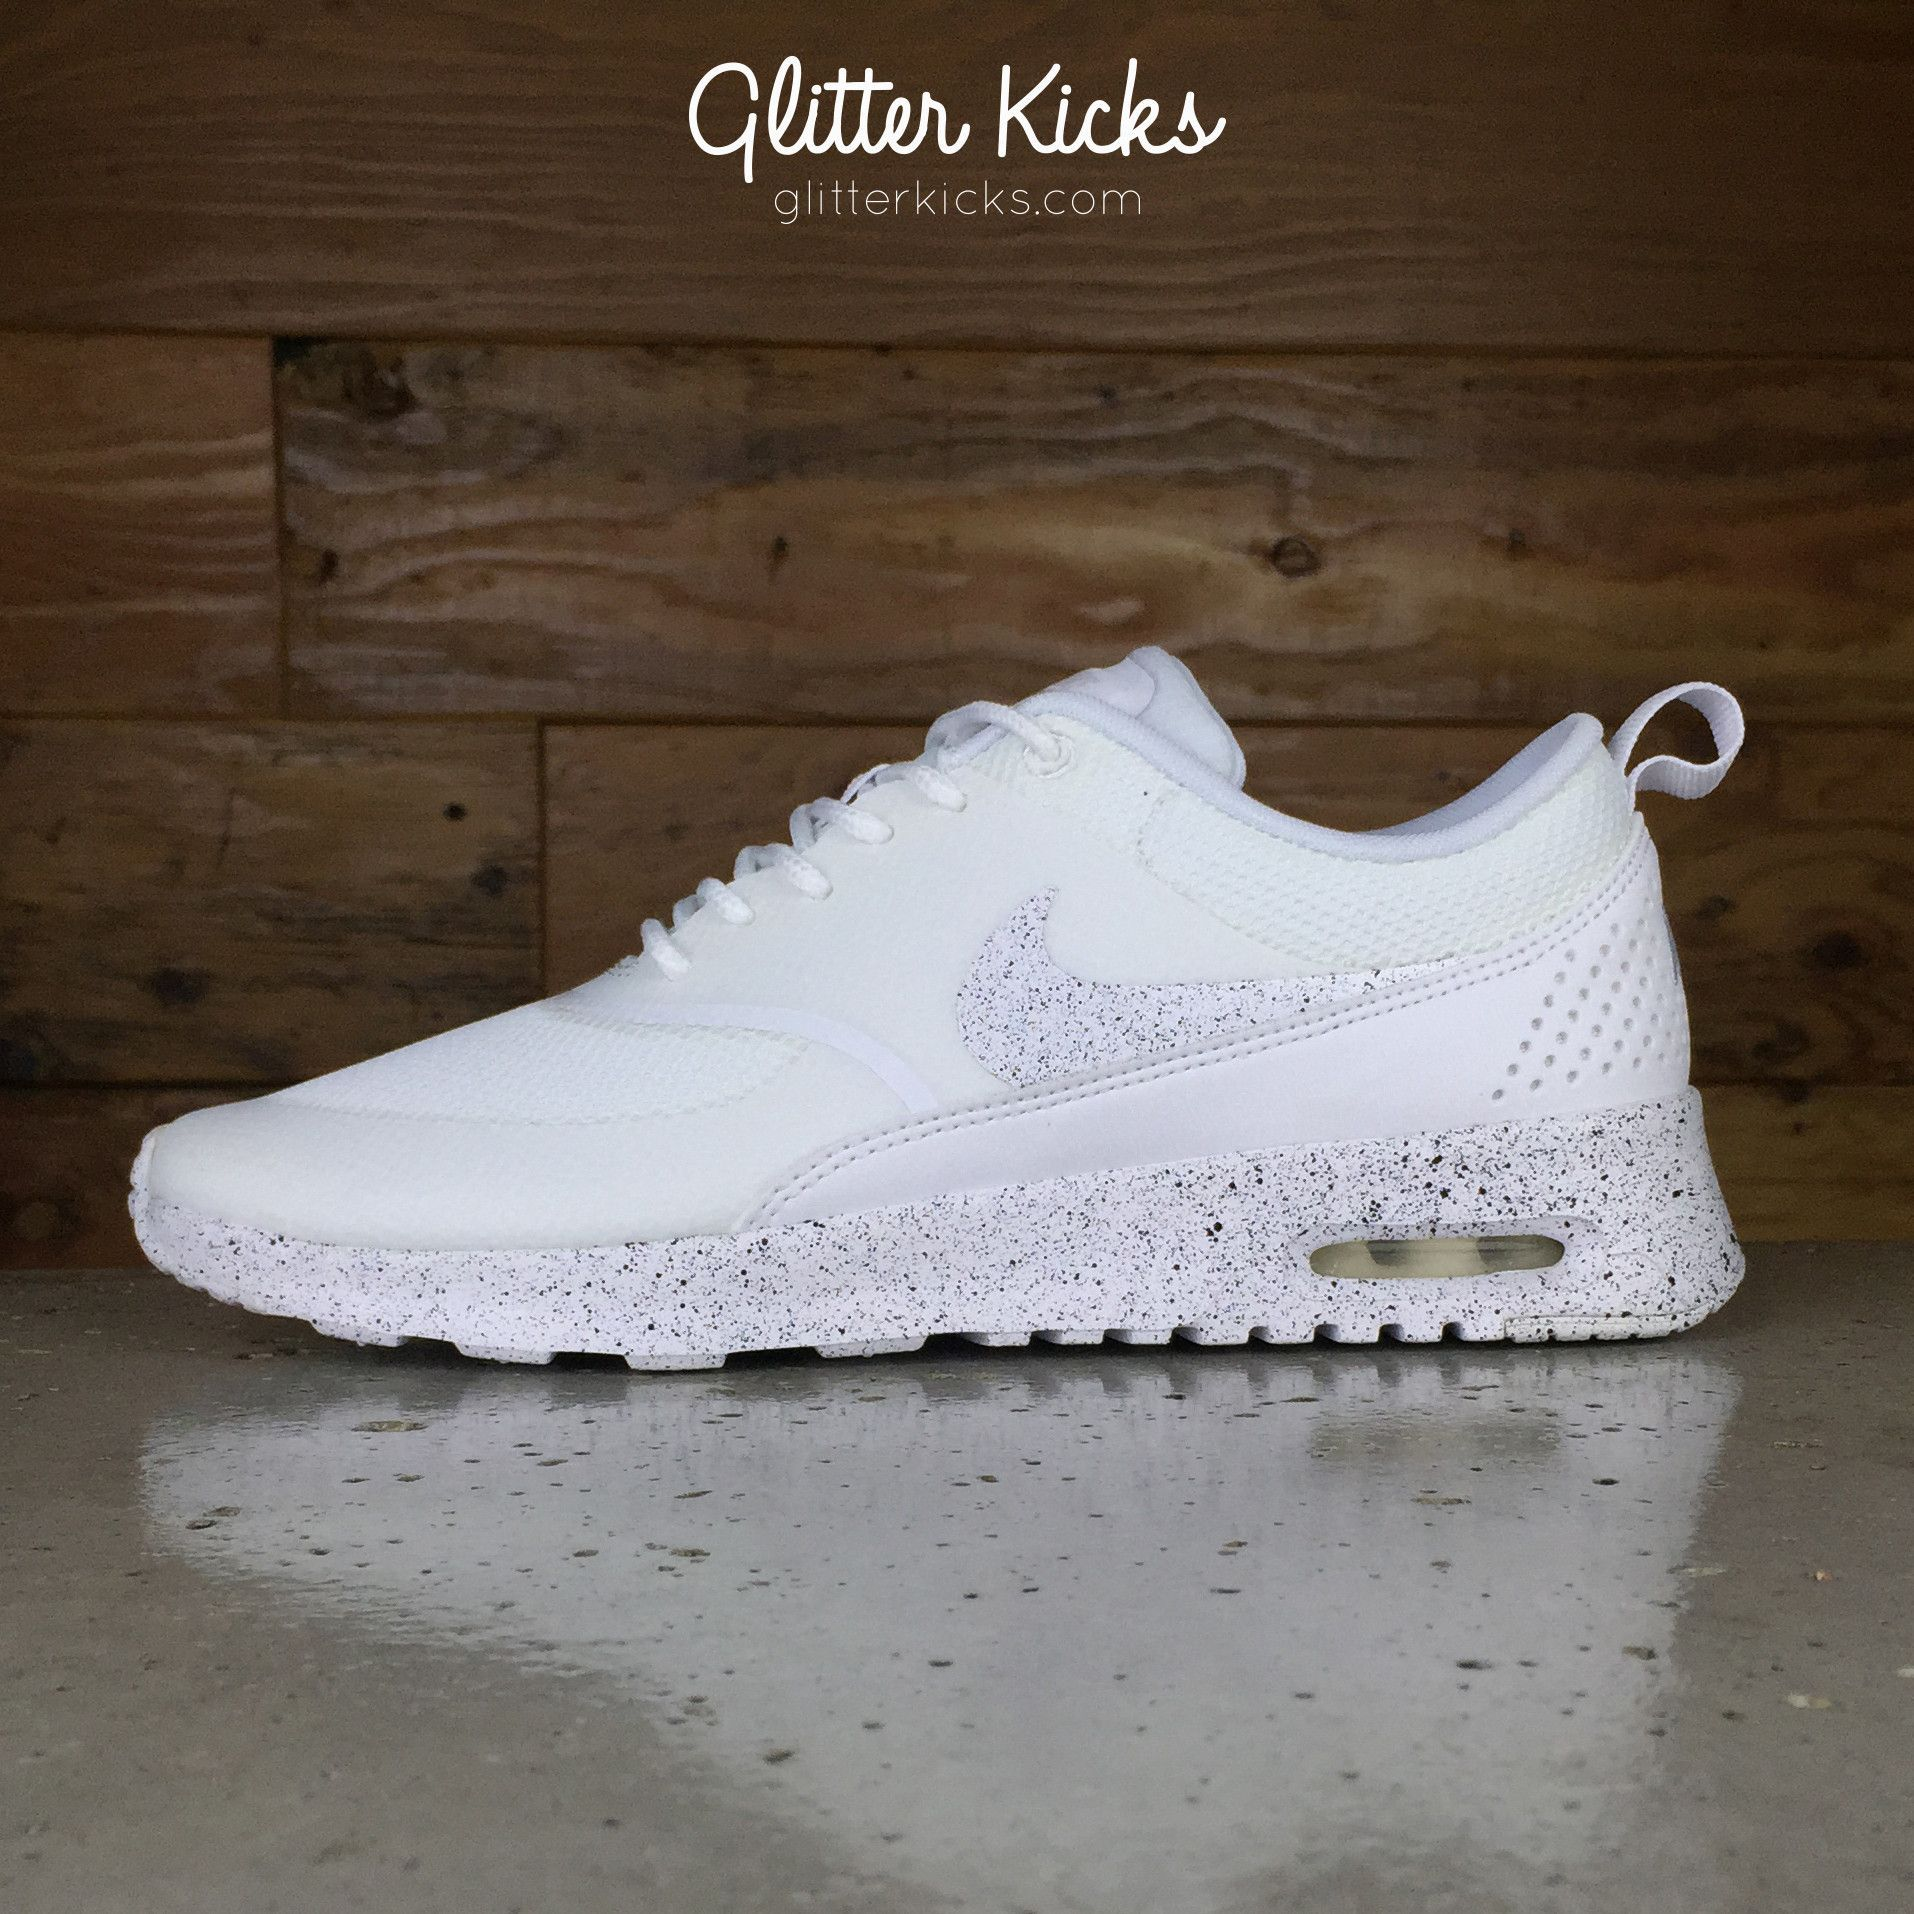 Nike Air Max Thea Running Shoes By Glitter Kicks - White White Black Paint  Speckle e3026c9322a9